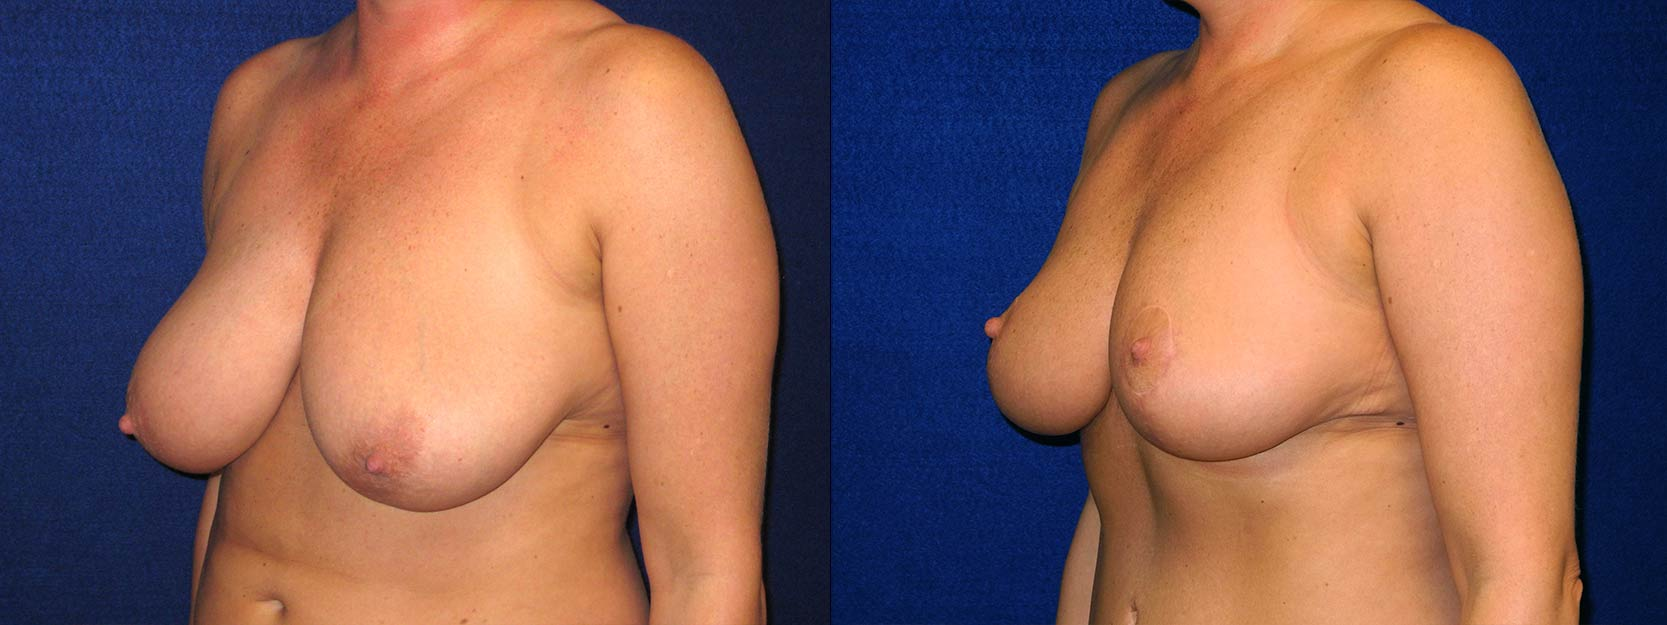 Left 3/4 View - Breast Reduction After Pregnancy